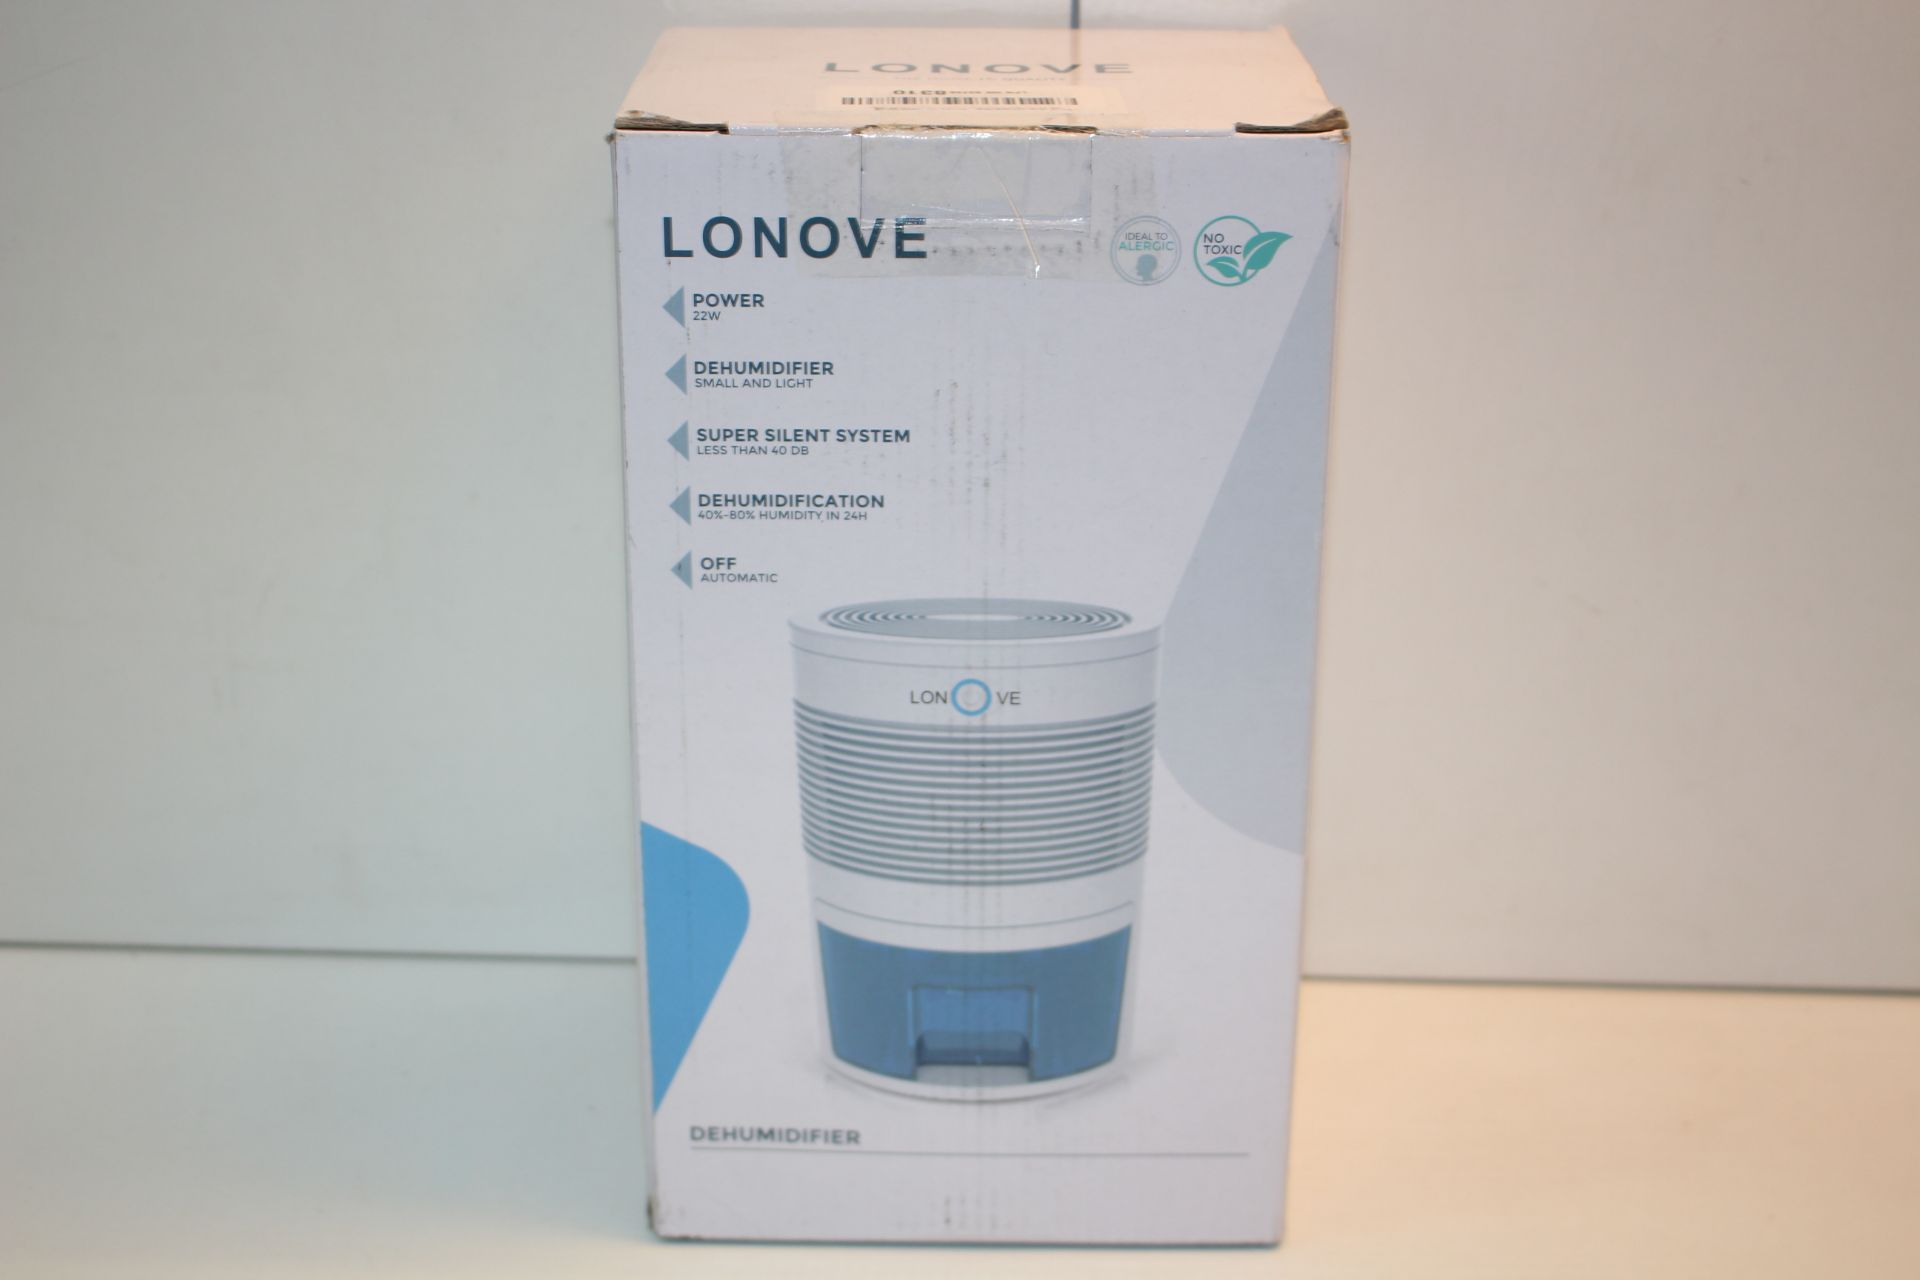 BOXED LONOVE MINI DEHUMIDIFIERTCondition ReportAppraisal Available on Request- All Items are